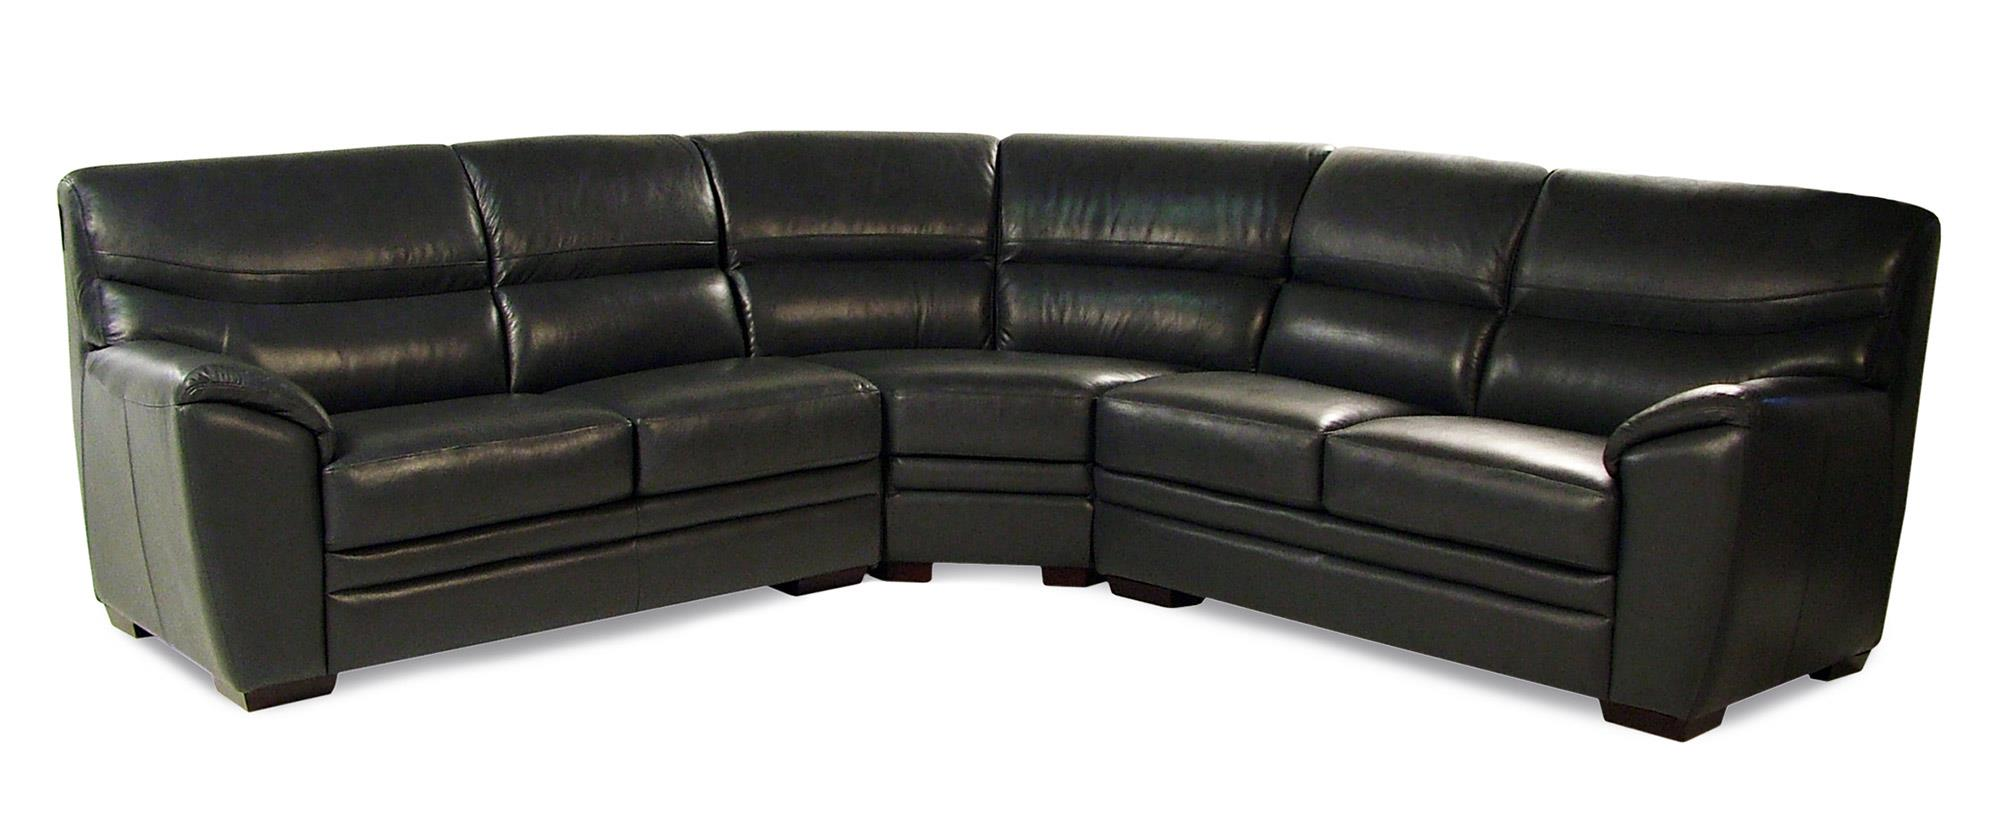 Loft Leather Arabesque 3-Piece Leather Sectional - Item Number: 8942-3PC-SECT